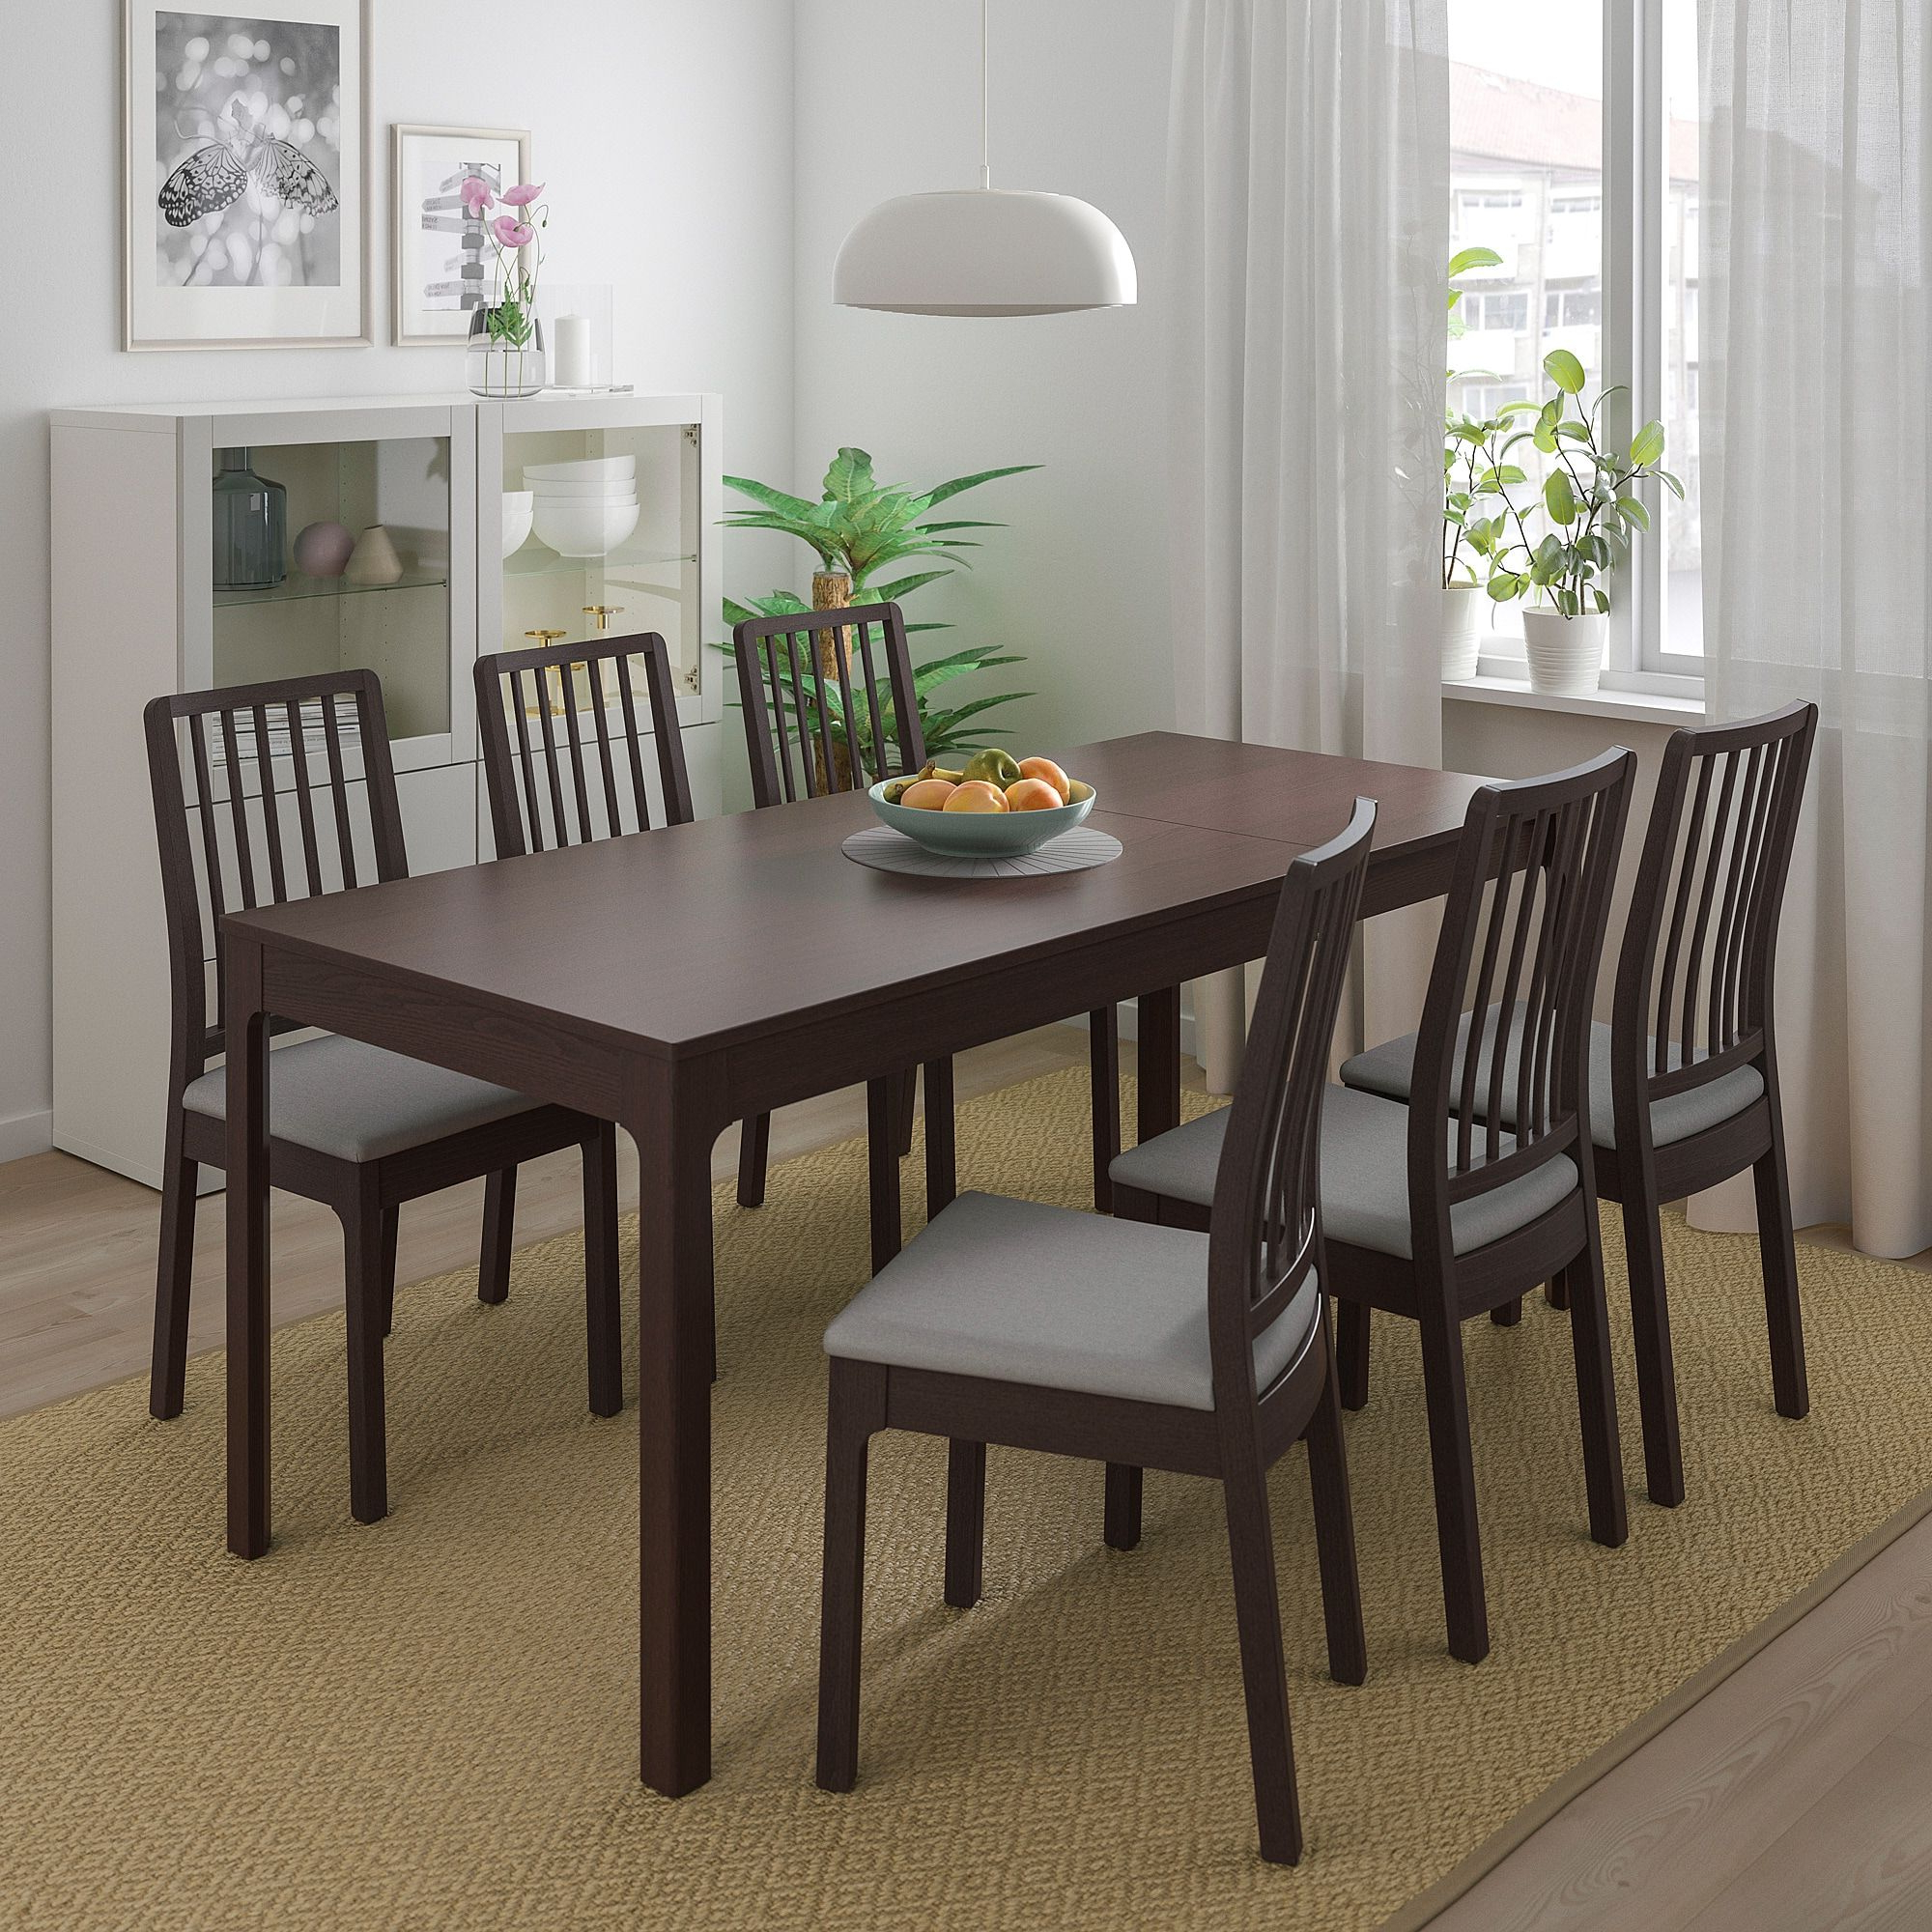 Well Liked Middleport 5 Piece Dining Sets Intended For Ikea – Ekedalen / Table And 4 Chairs Dark Brown, Orrsta Light Gray (View 19 of 20)